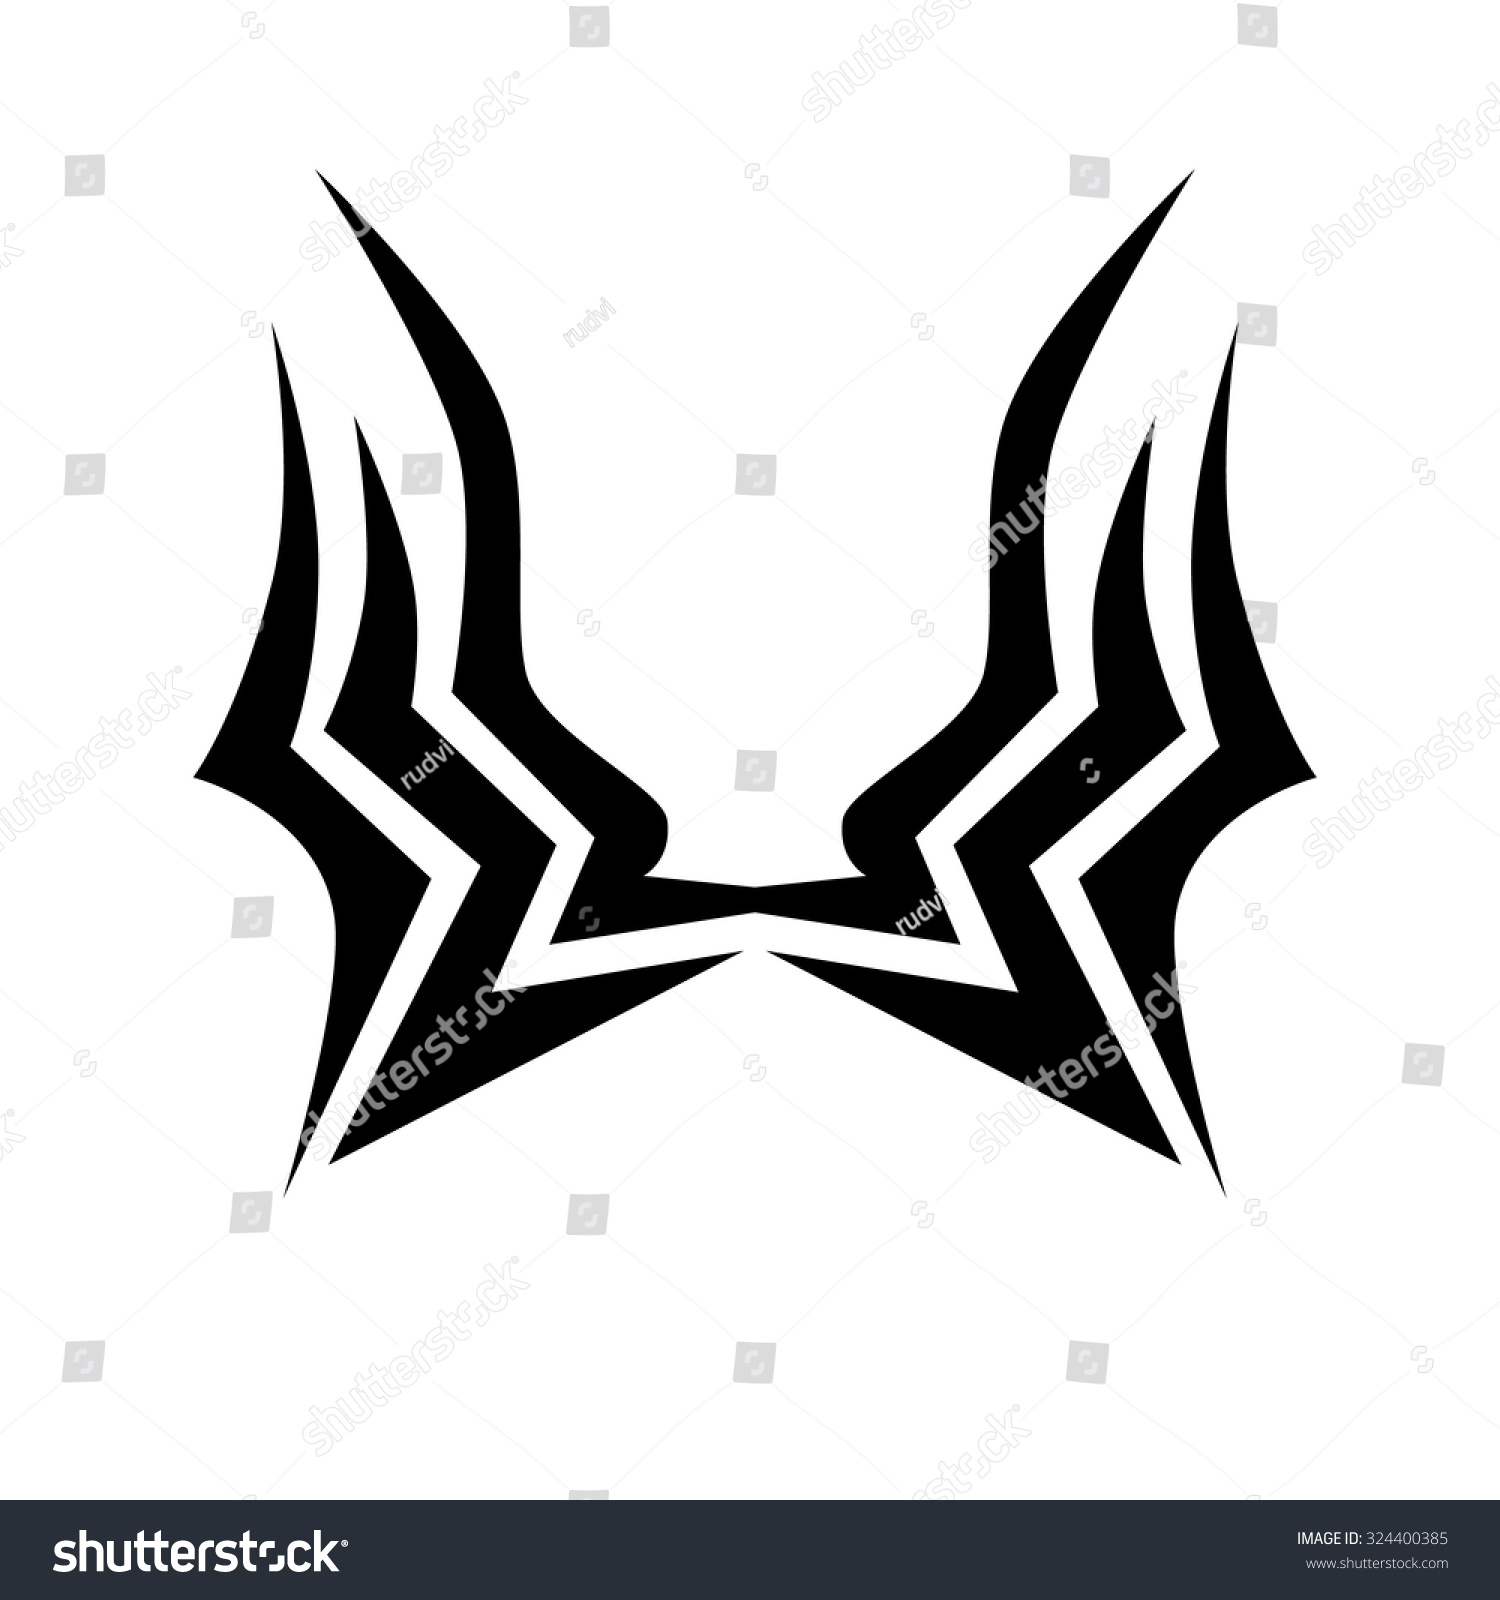 Tribal-Tattoos stock-vector-vector-tribal-tattoo-designs-tribal-tattoos-art-tribal-tattoo-vector-sketch-of-a-tattoo-324400385